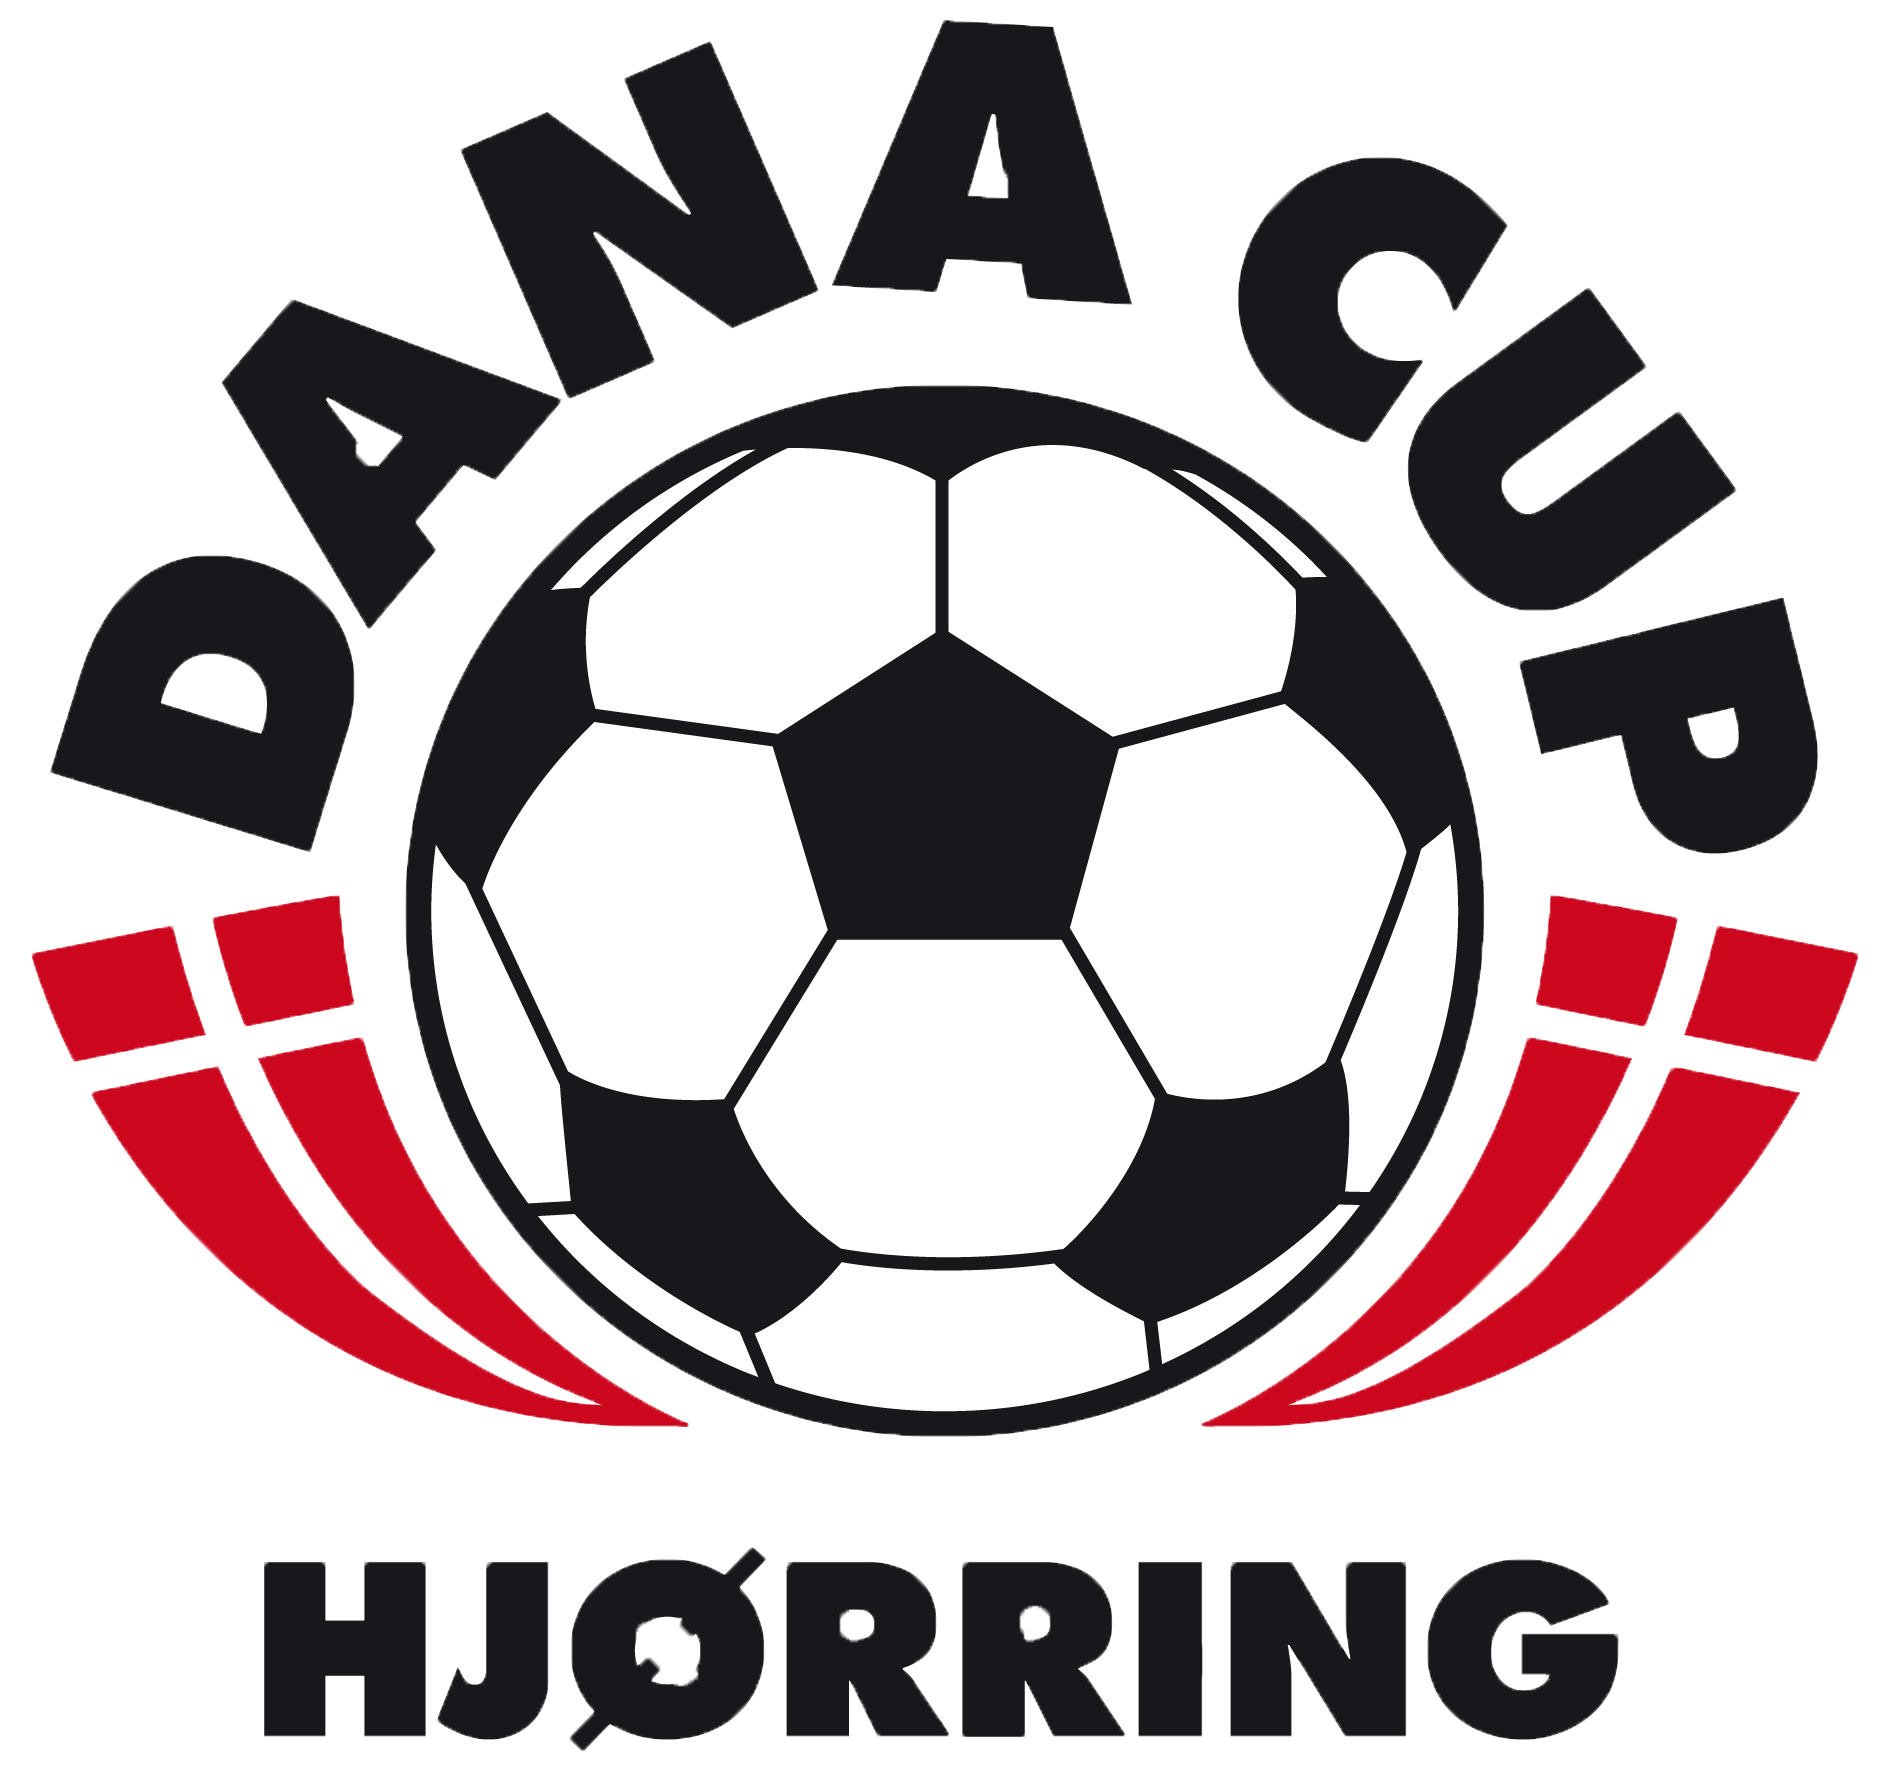 https://www.flintfotball.no/wp-content/uploads/2019/07/danacup_logo_black.png